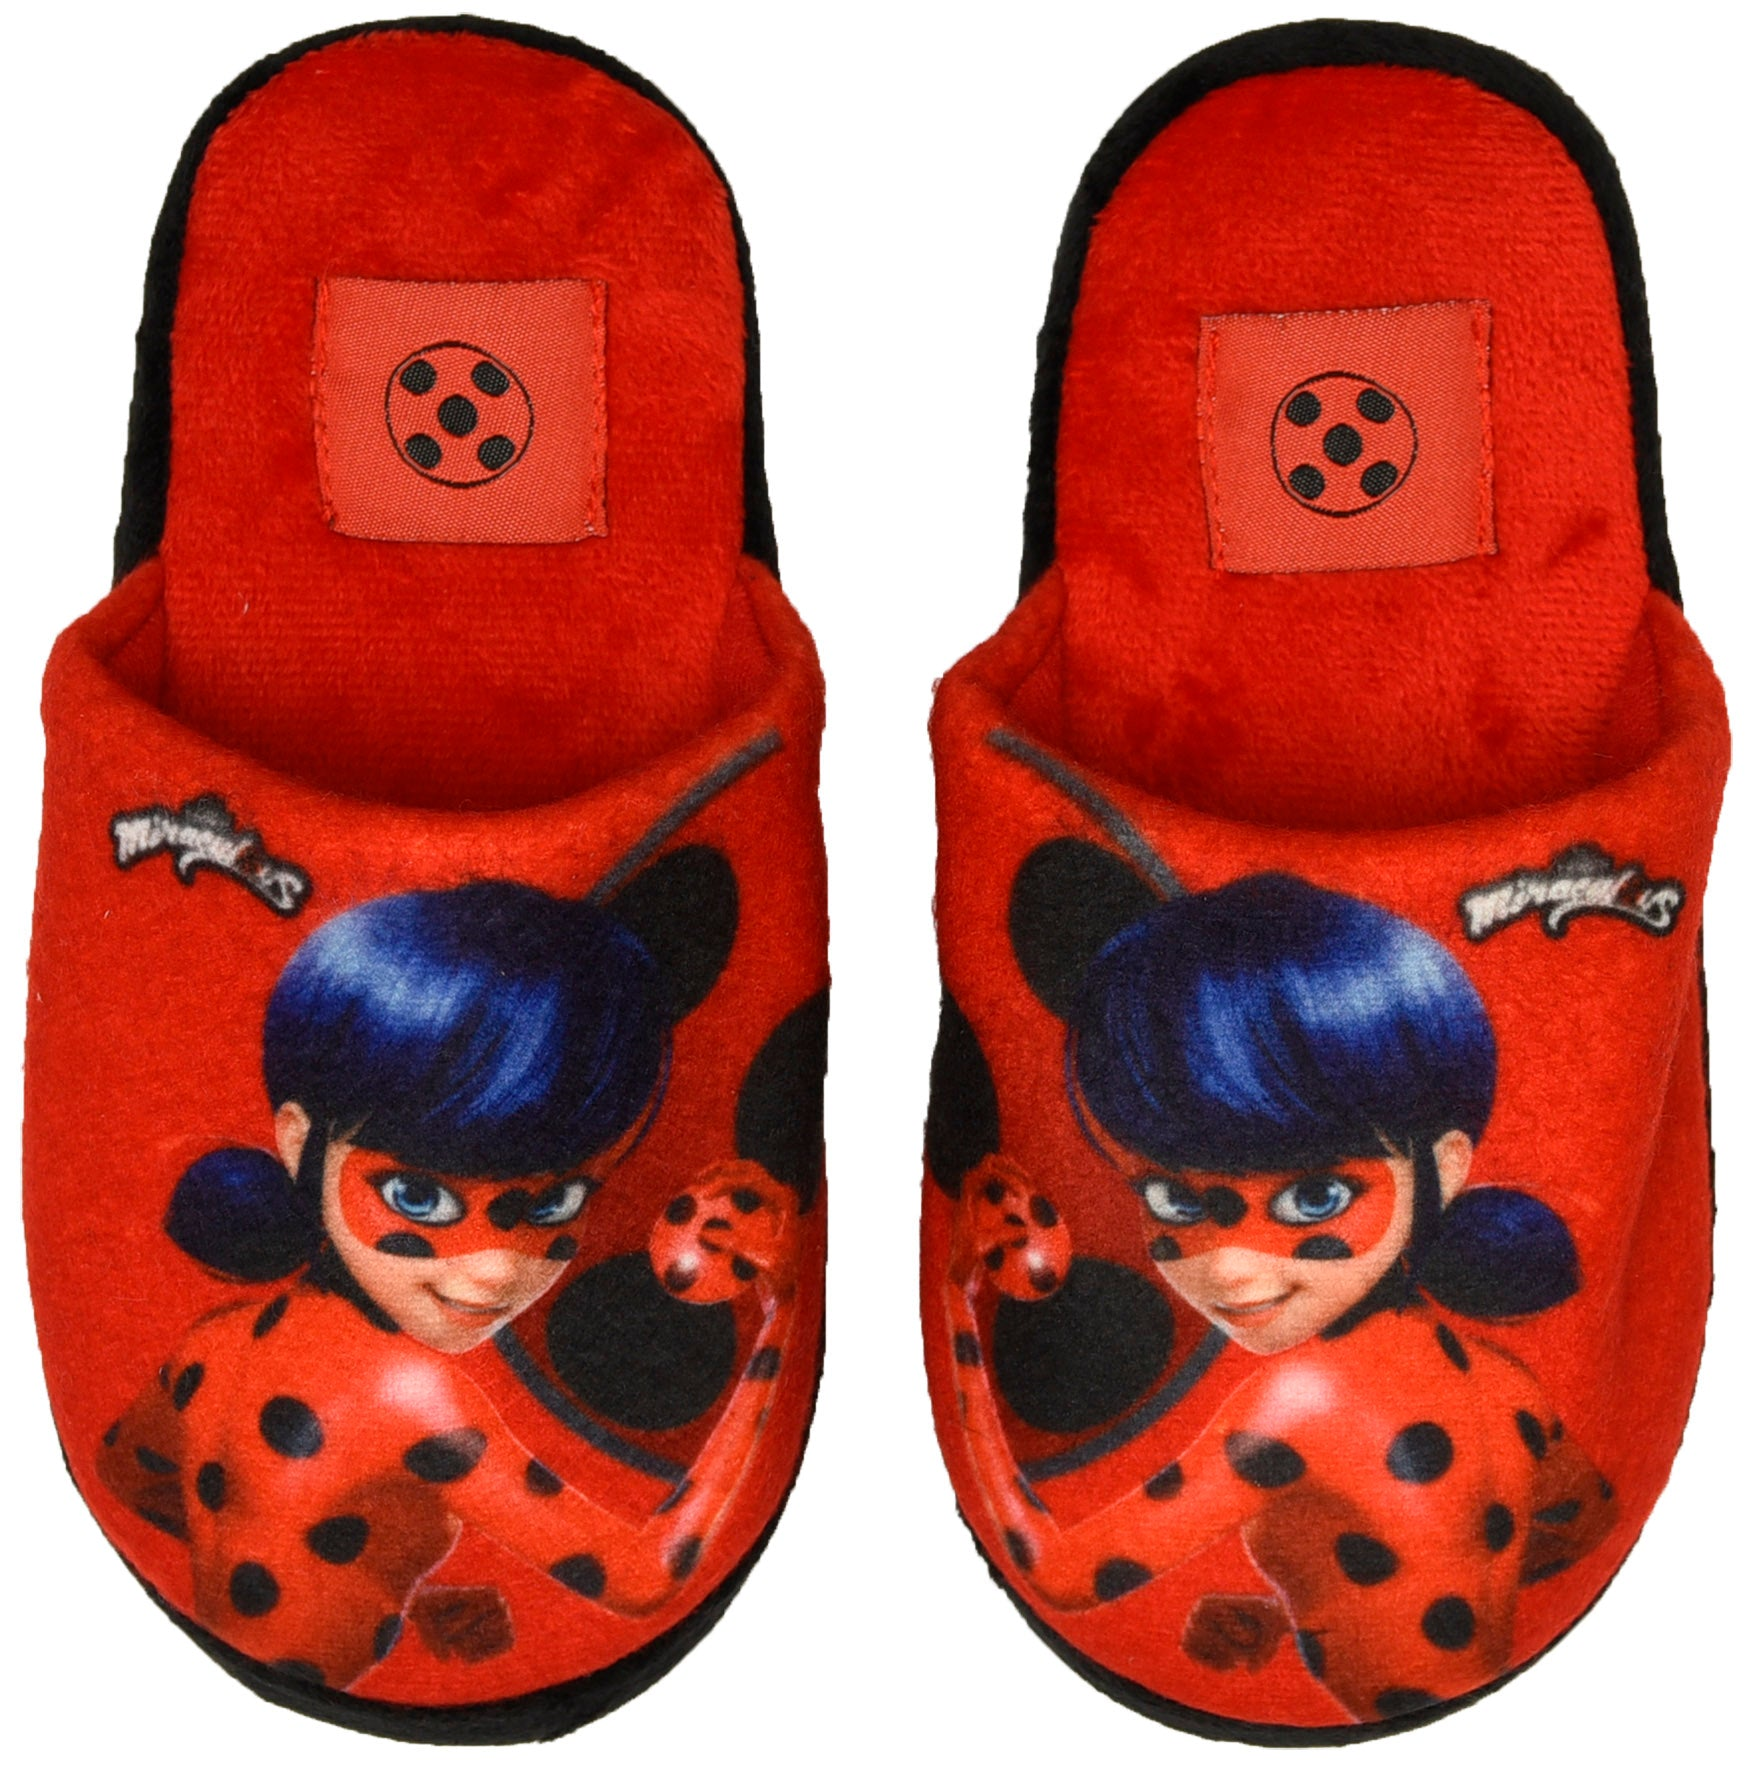 Miraculous slipper with hero design